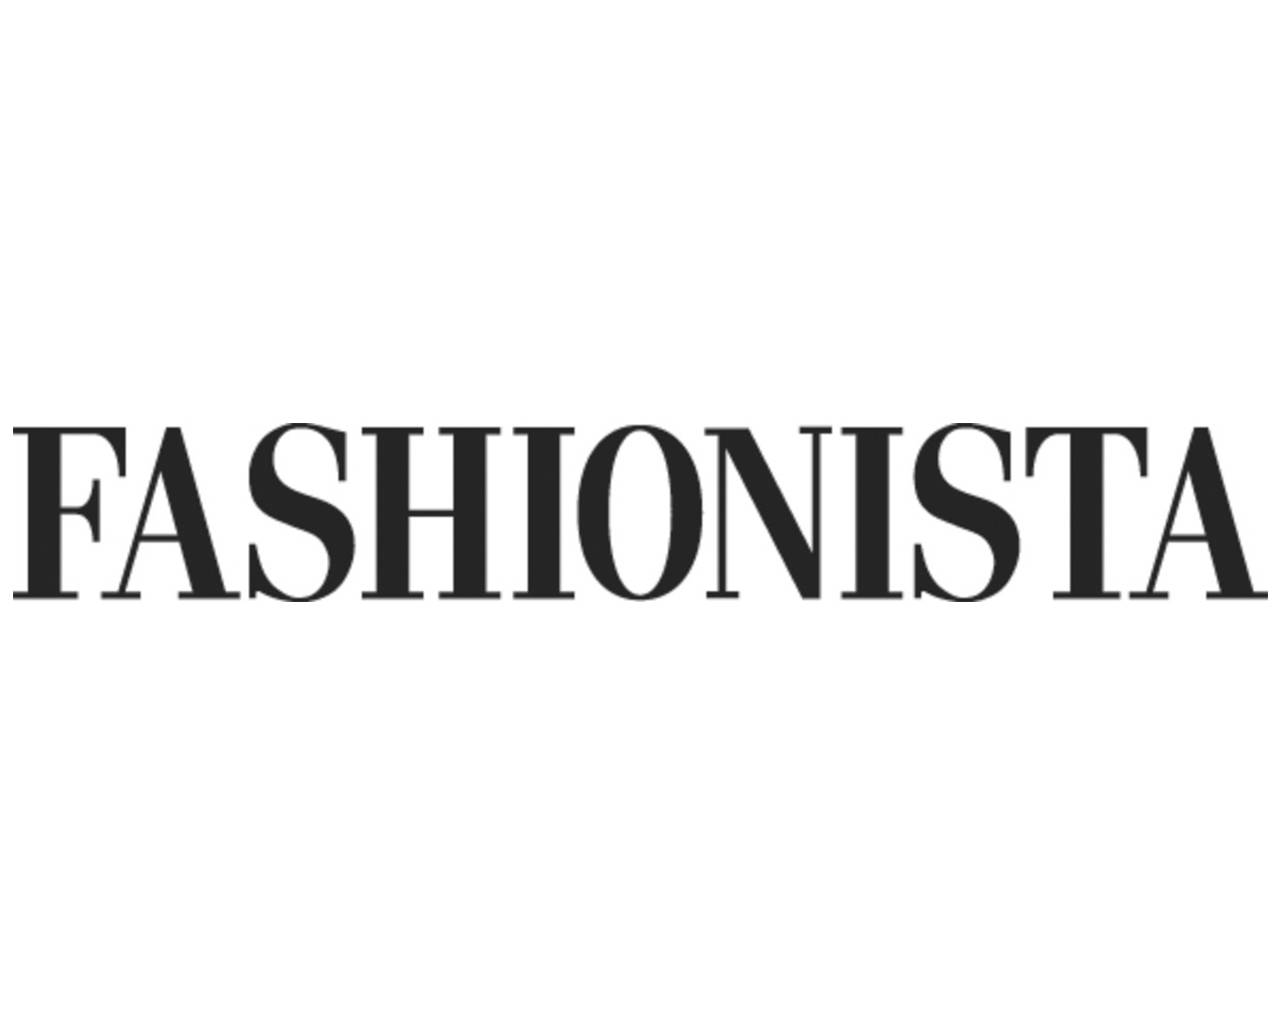 Fashionista Fashion Magazine Logo